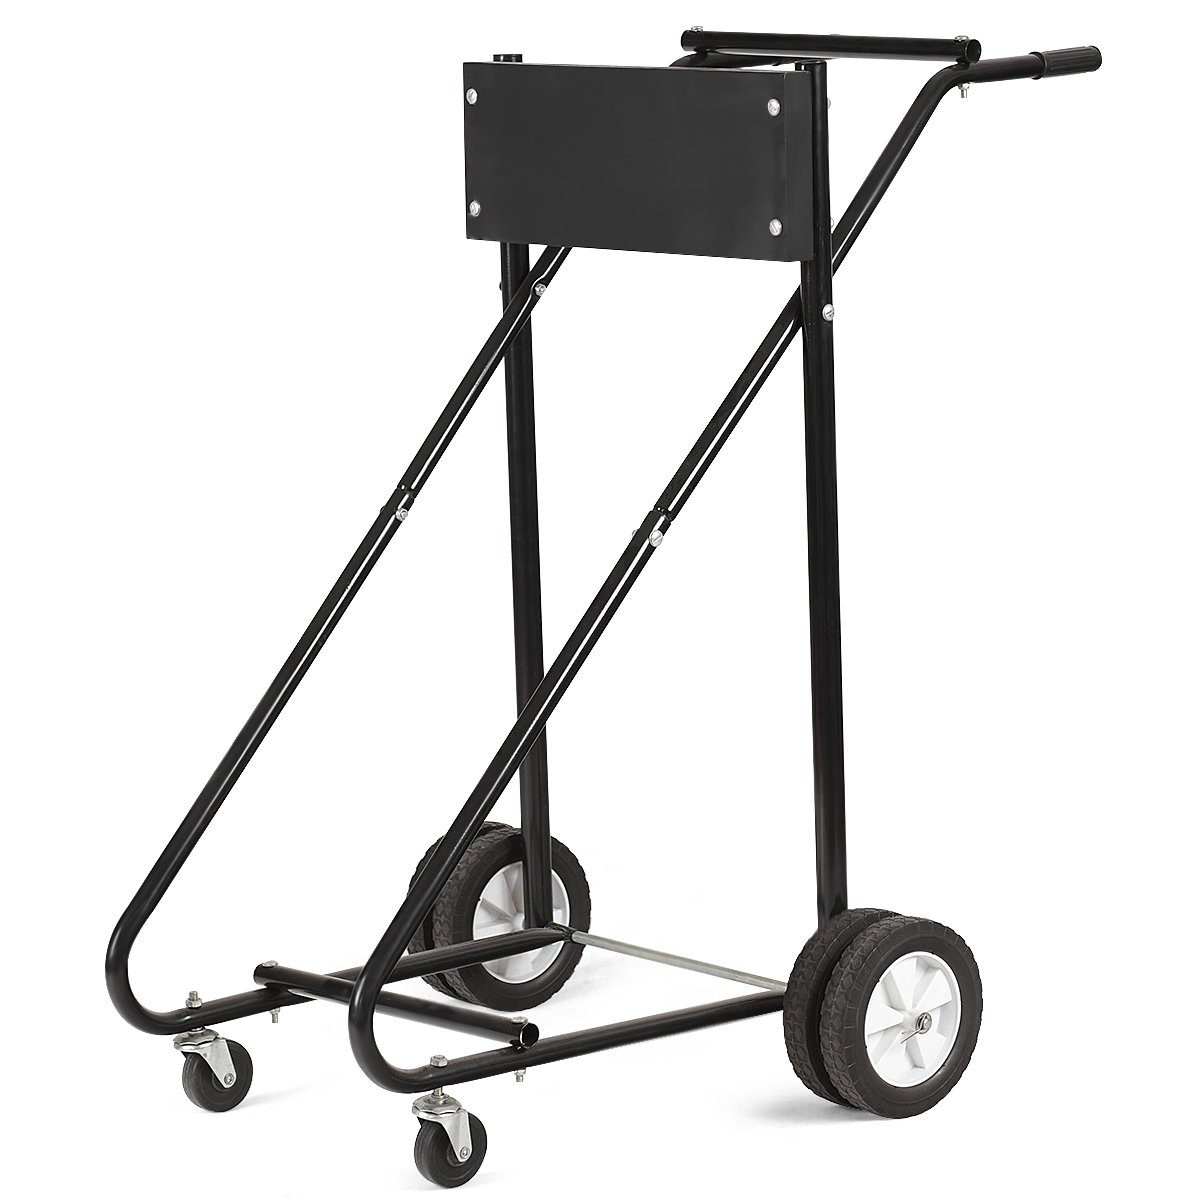 Goplus Boat Motor Stand, 315 LBS Heavy Duty Pro Outboard Engine Carrier Cart Dolly Storage (Black) (Black) by Goplus